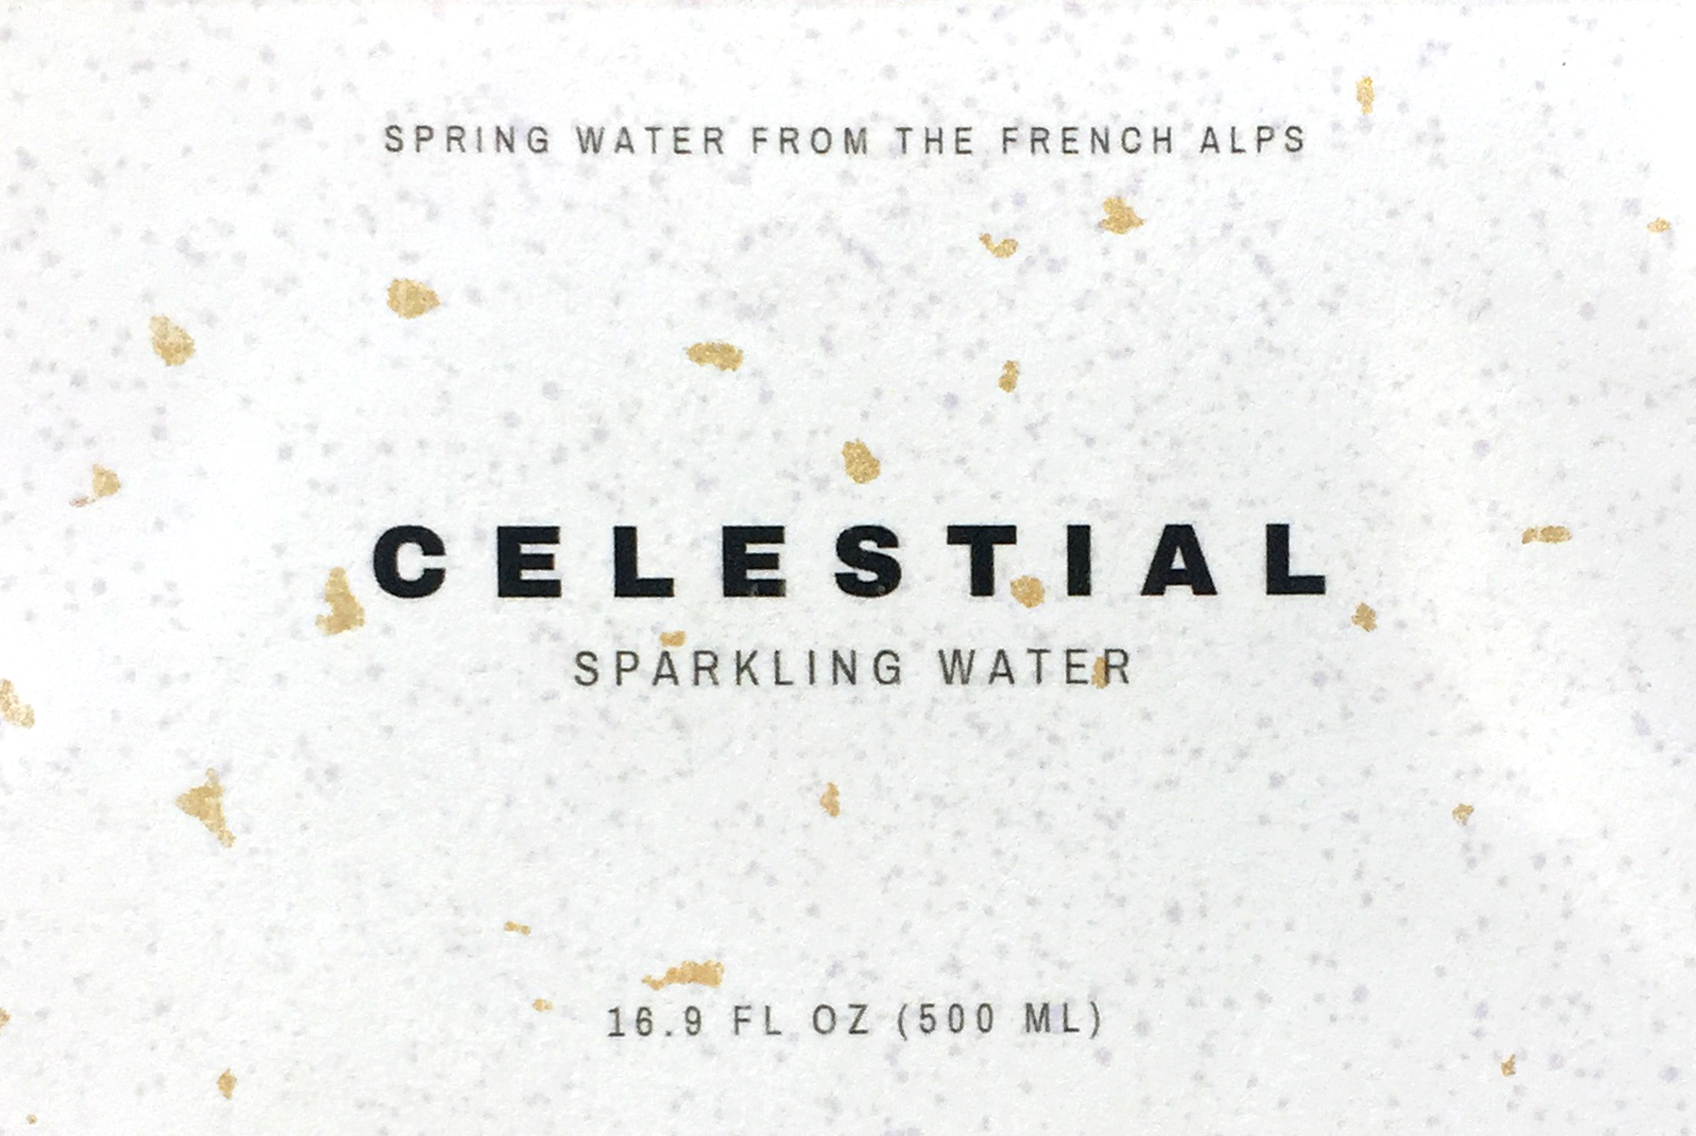 celestial sparkling water